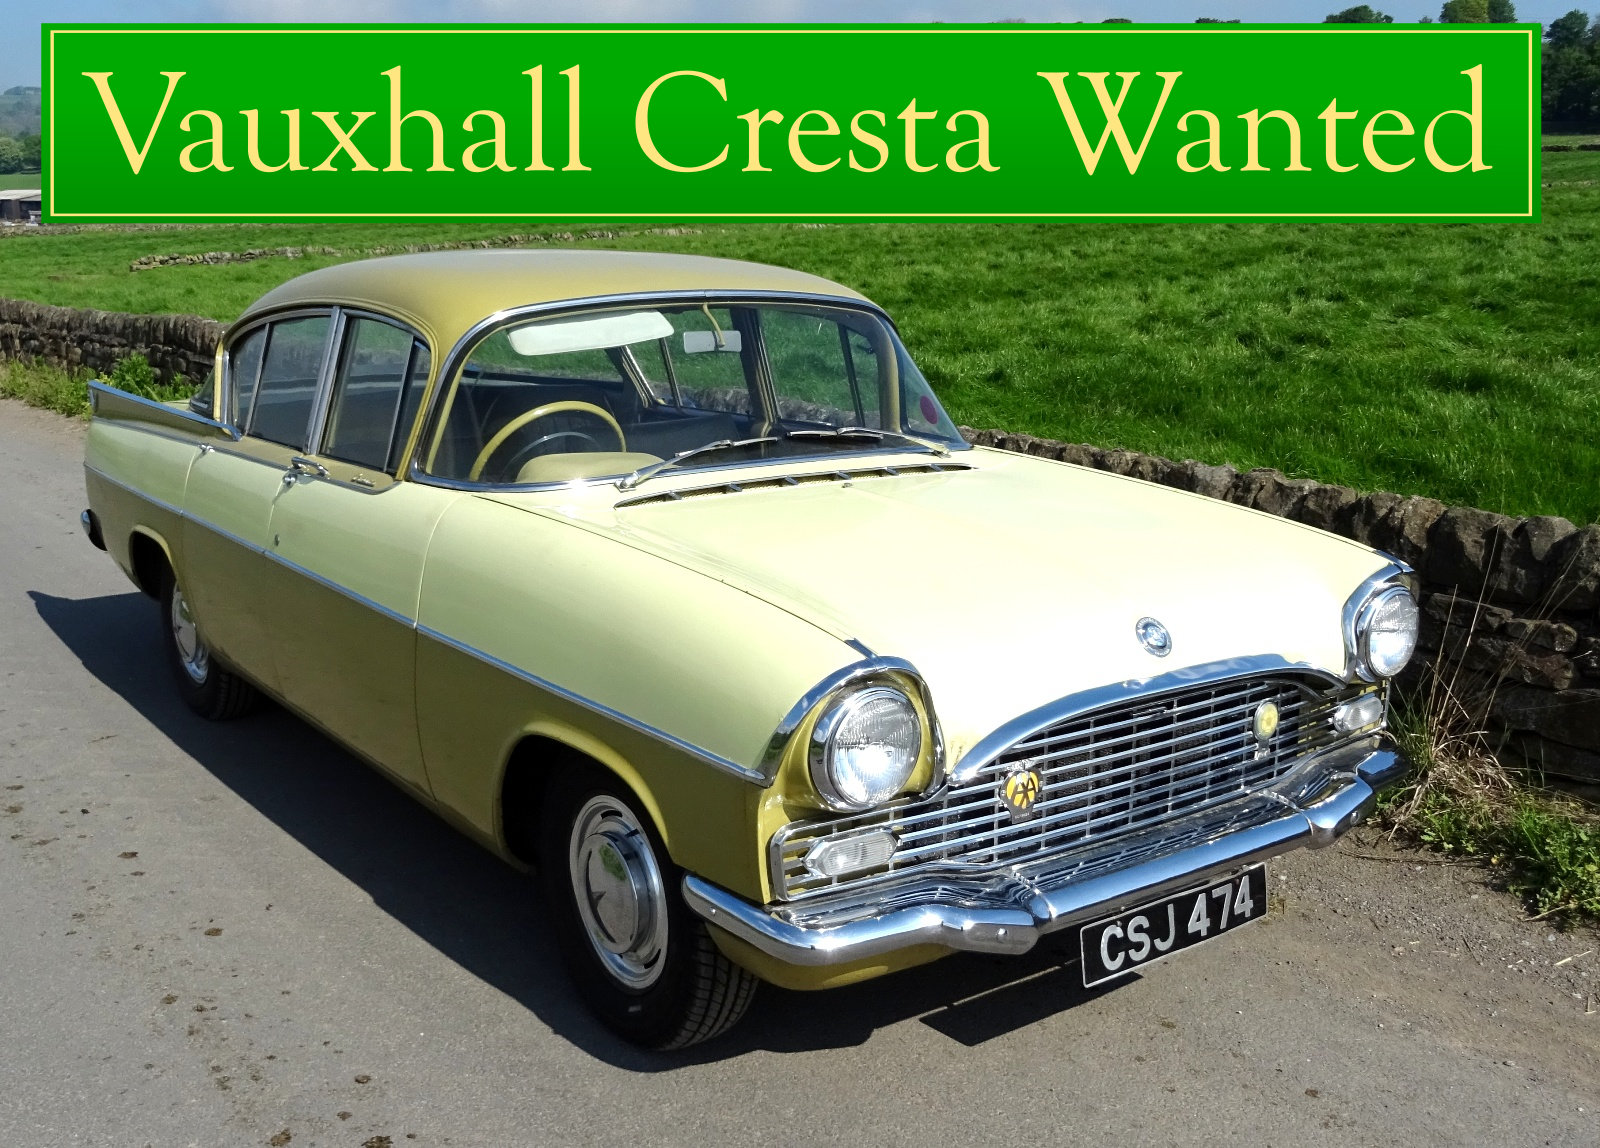 FORD ZODIAC MK1 WANTED, CLASSIC CARS WANTED, INSTANT PAYMENT Wanted (picture 5 of 6)